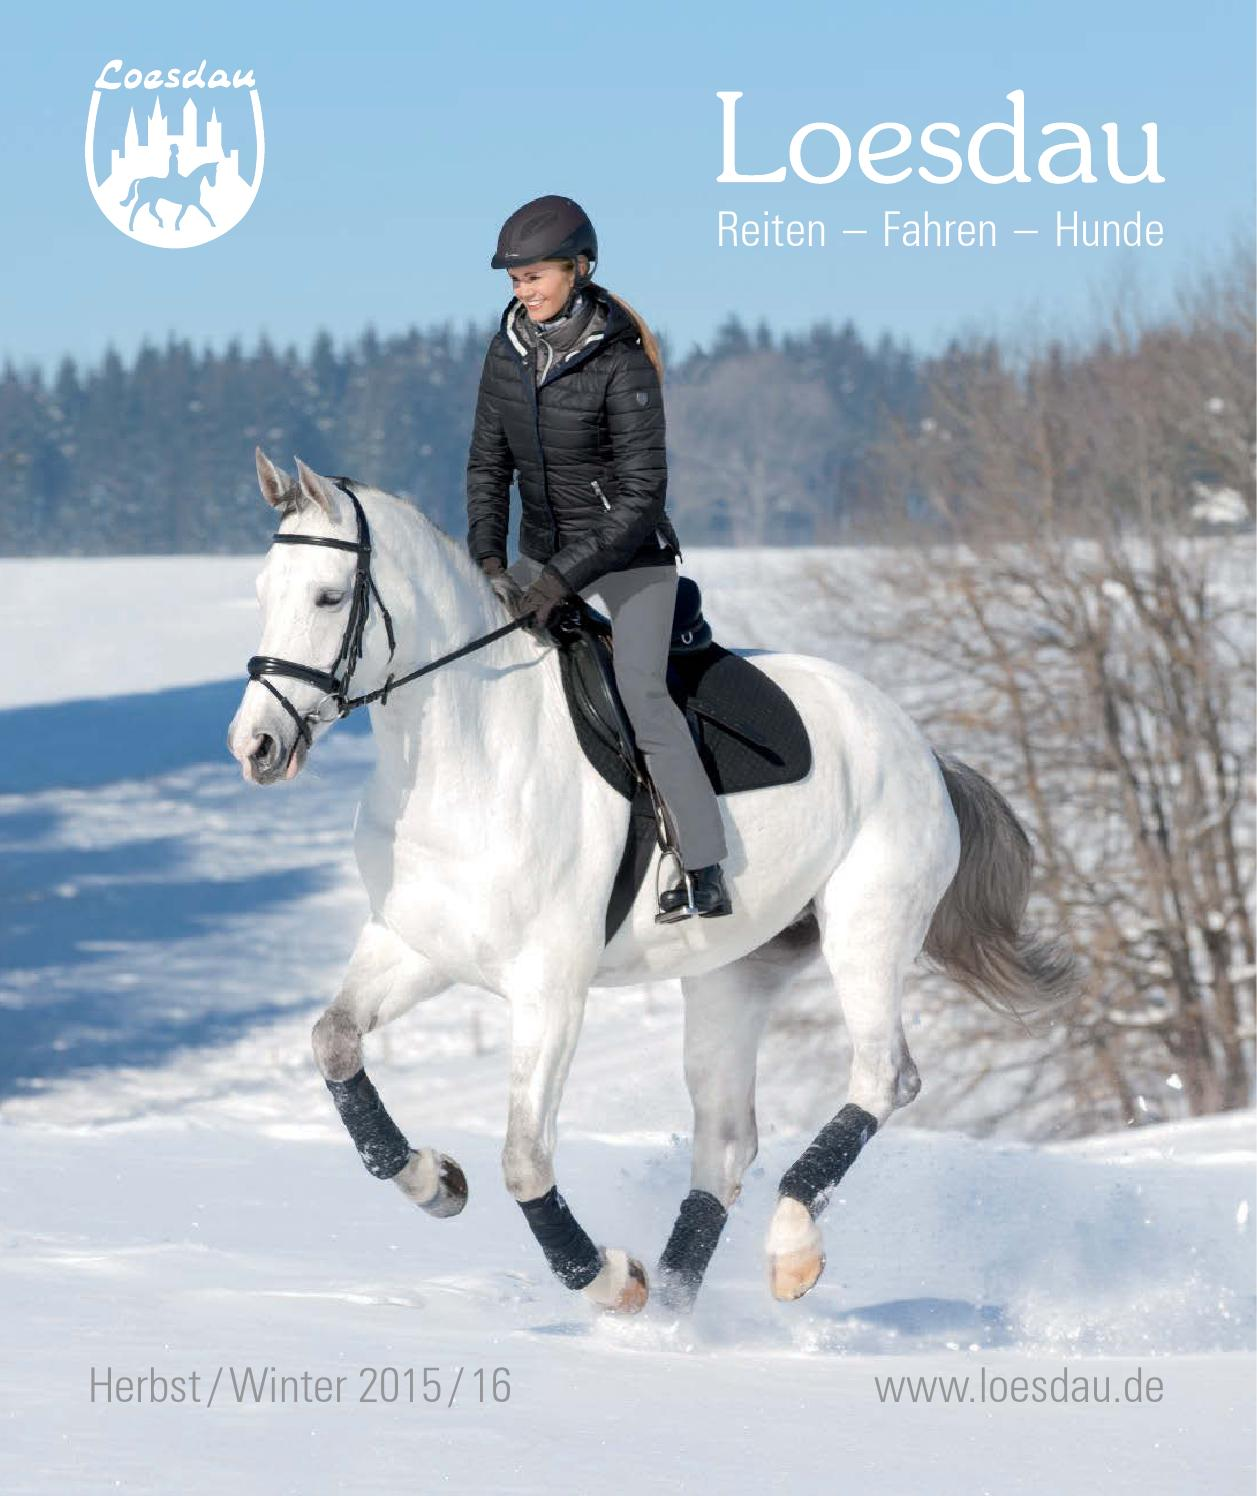 Herbstwinter 2015 16 www loesdau de by HRCS issuu